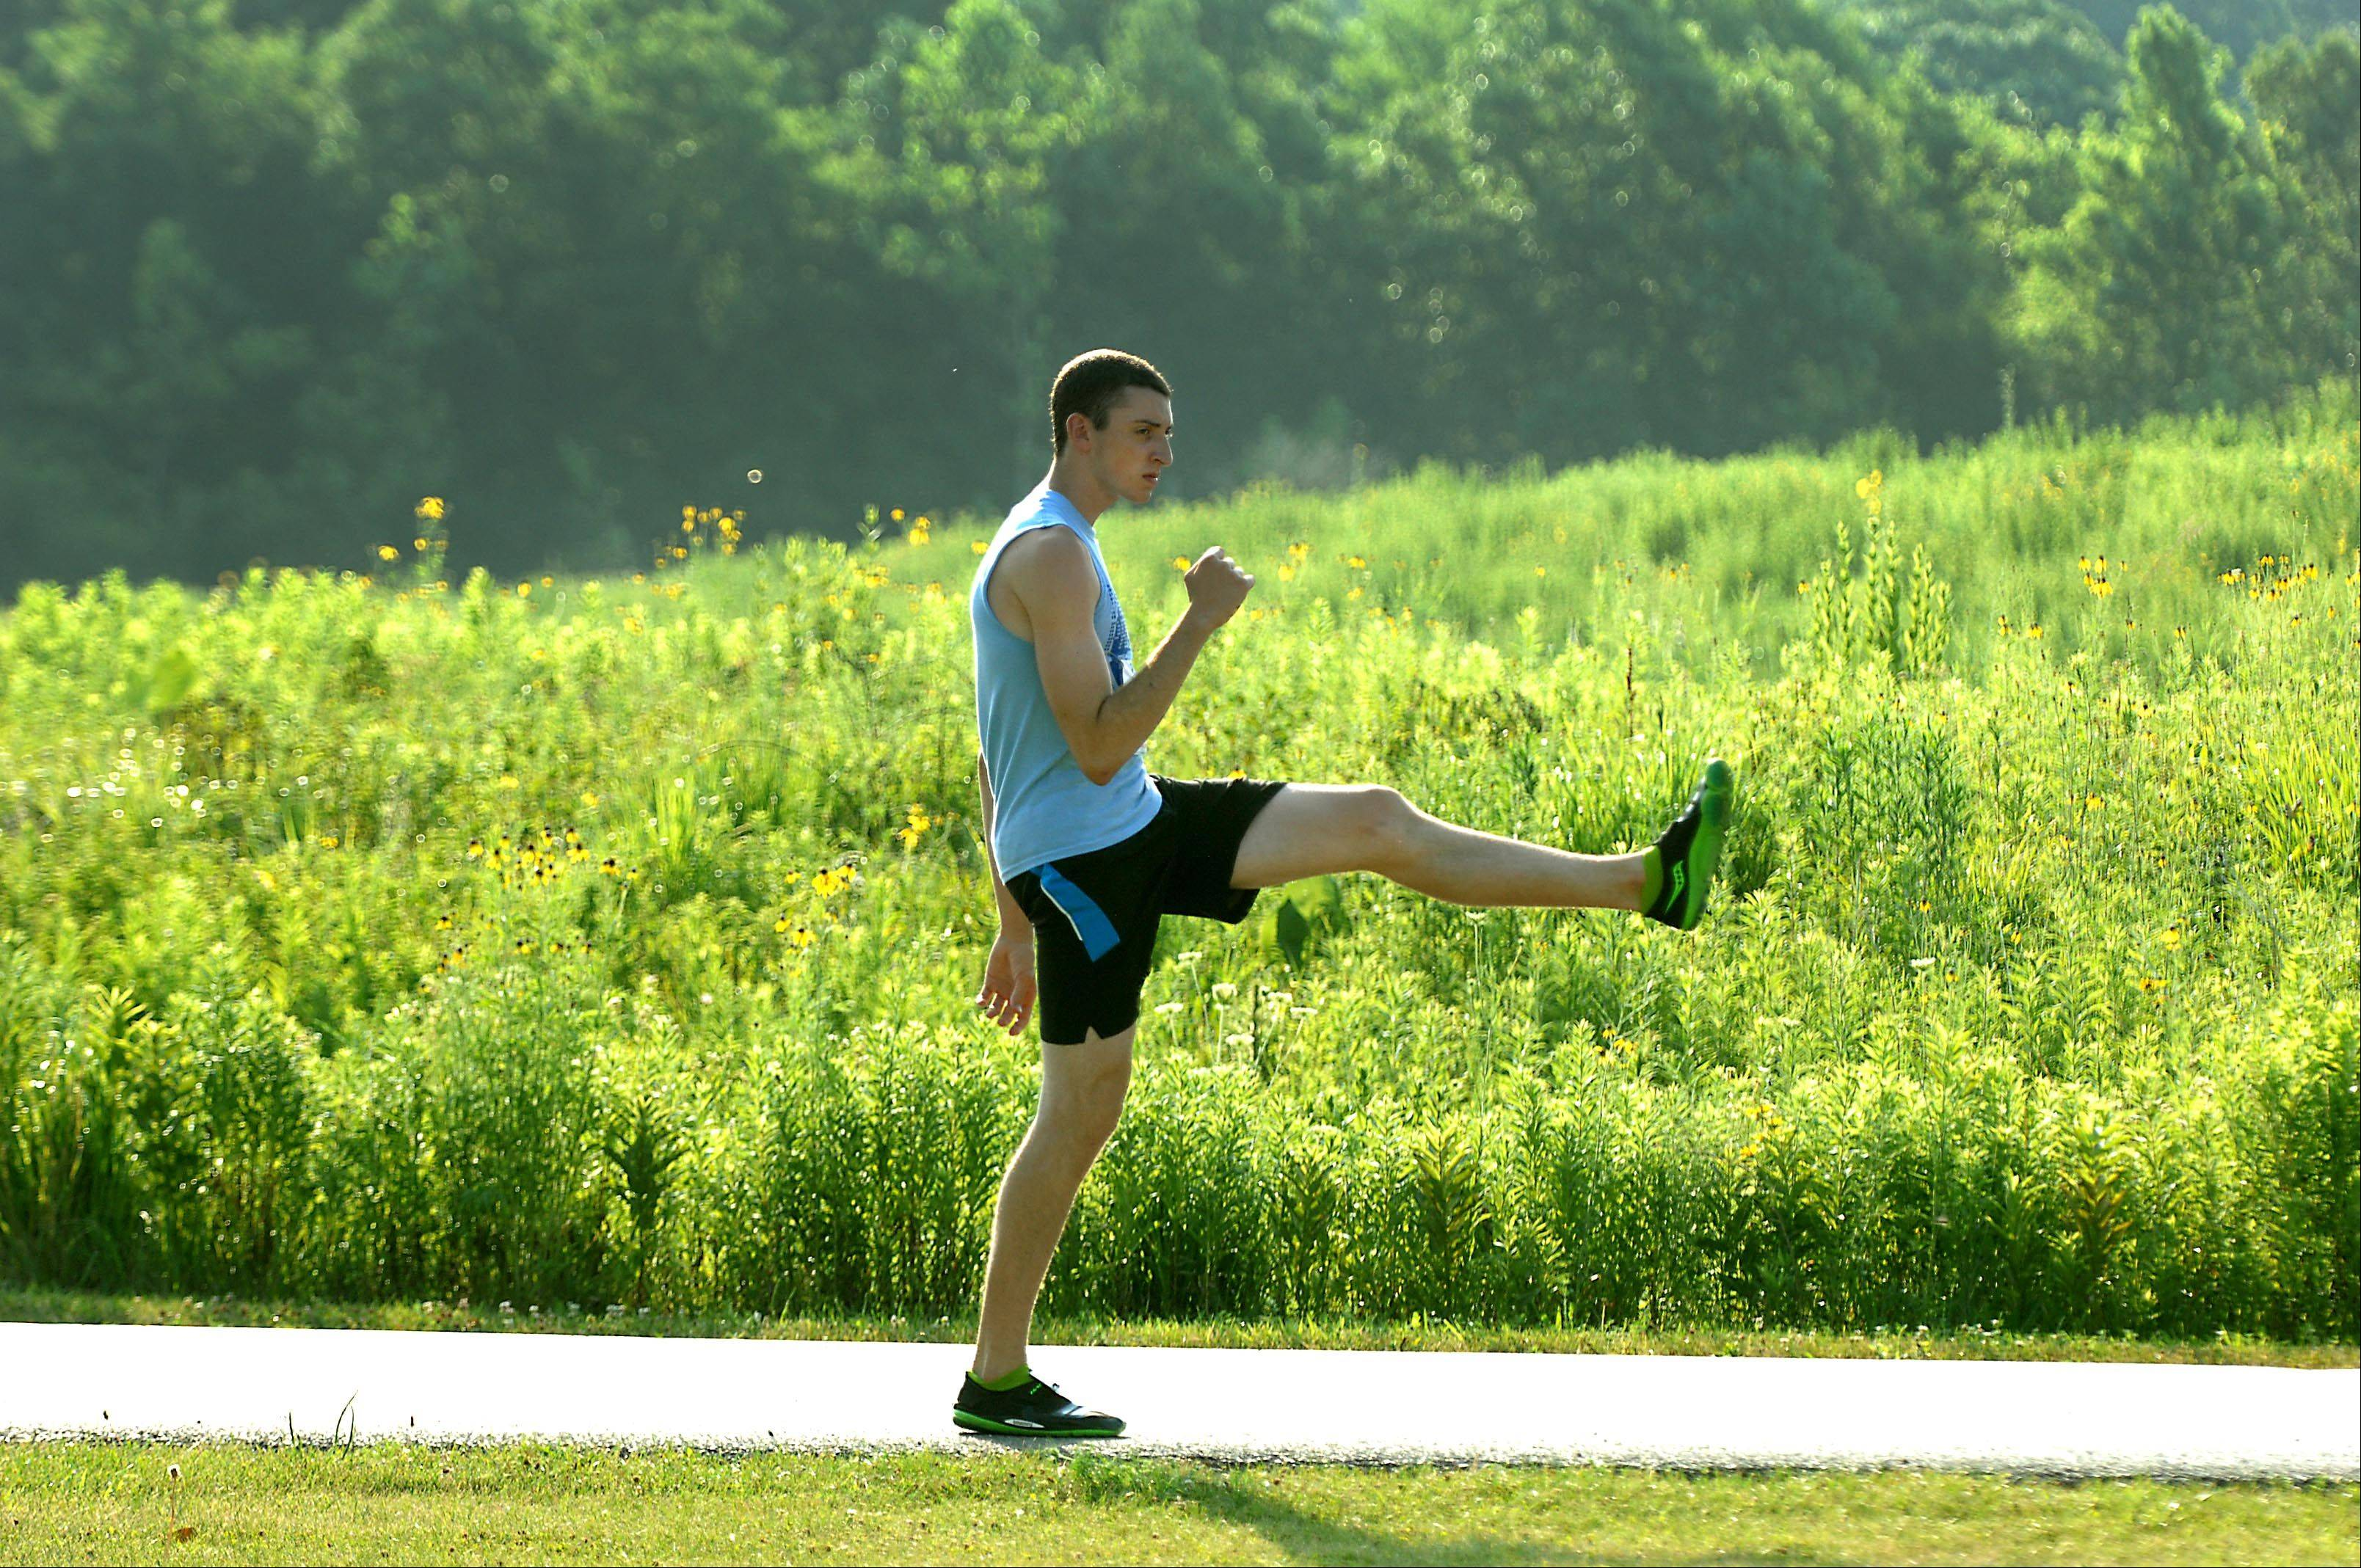 Dan Morgan, a senior at Burlington Central High School, stretches Wednesday before the start of The Great Western Freedom 4 road race at LeRoy Oakes Forest Preserve in St. Charles. He said his goal was only to have fun.